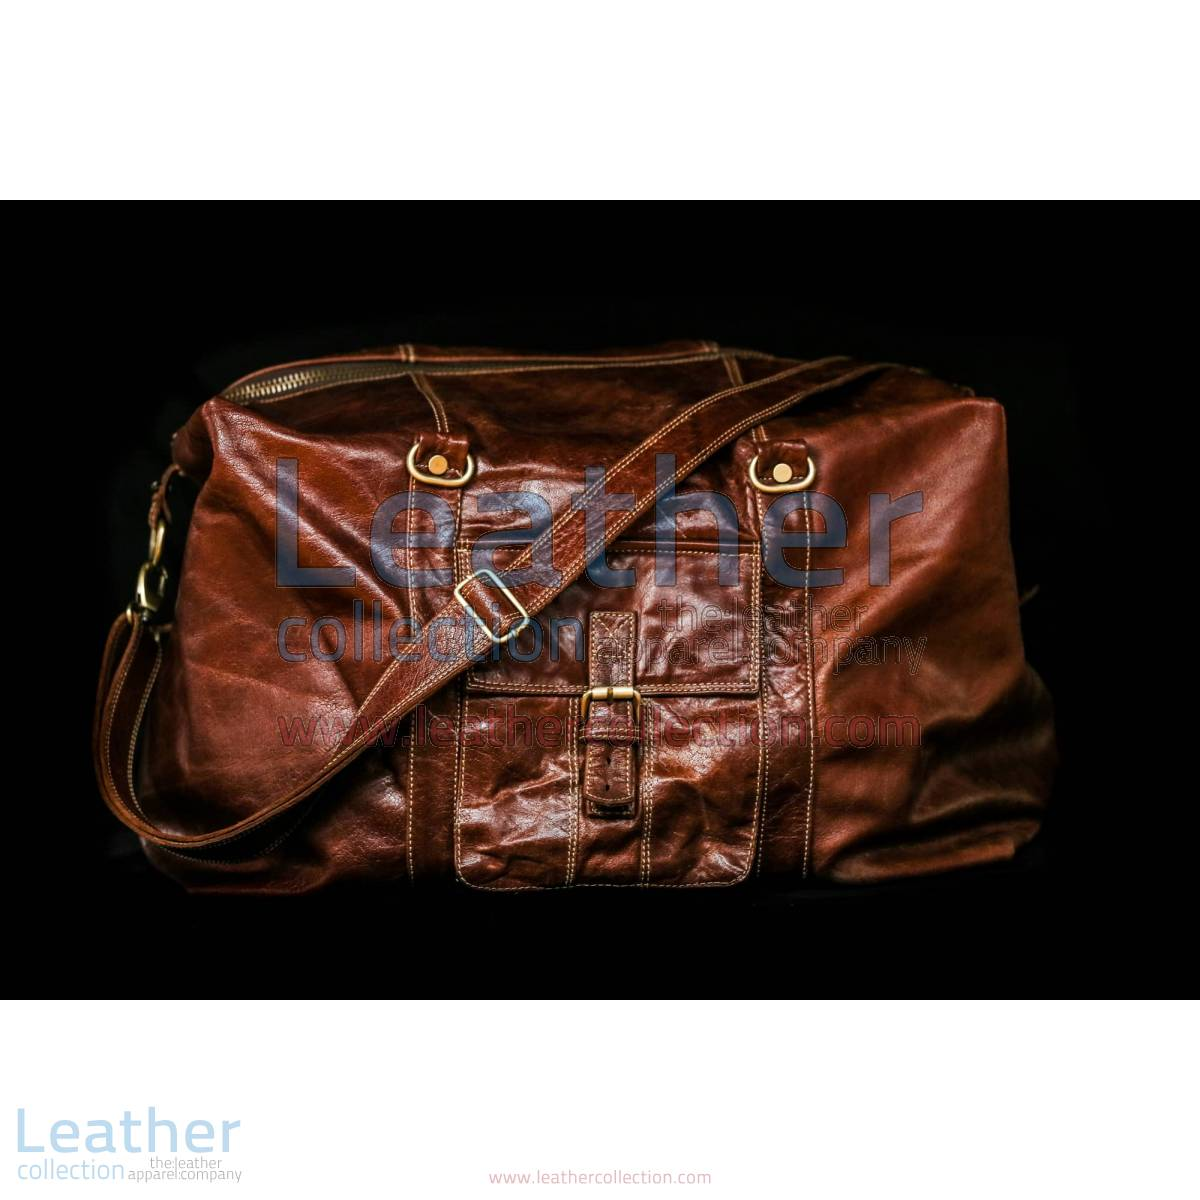 Rome Leather Luggage Bag | luggage bag,leather luggage bag